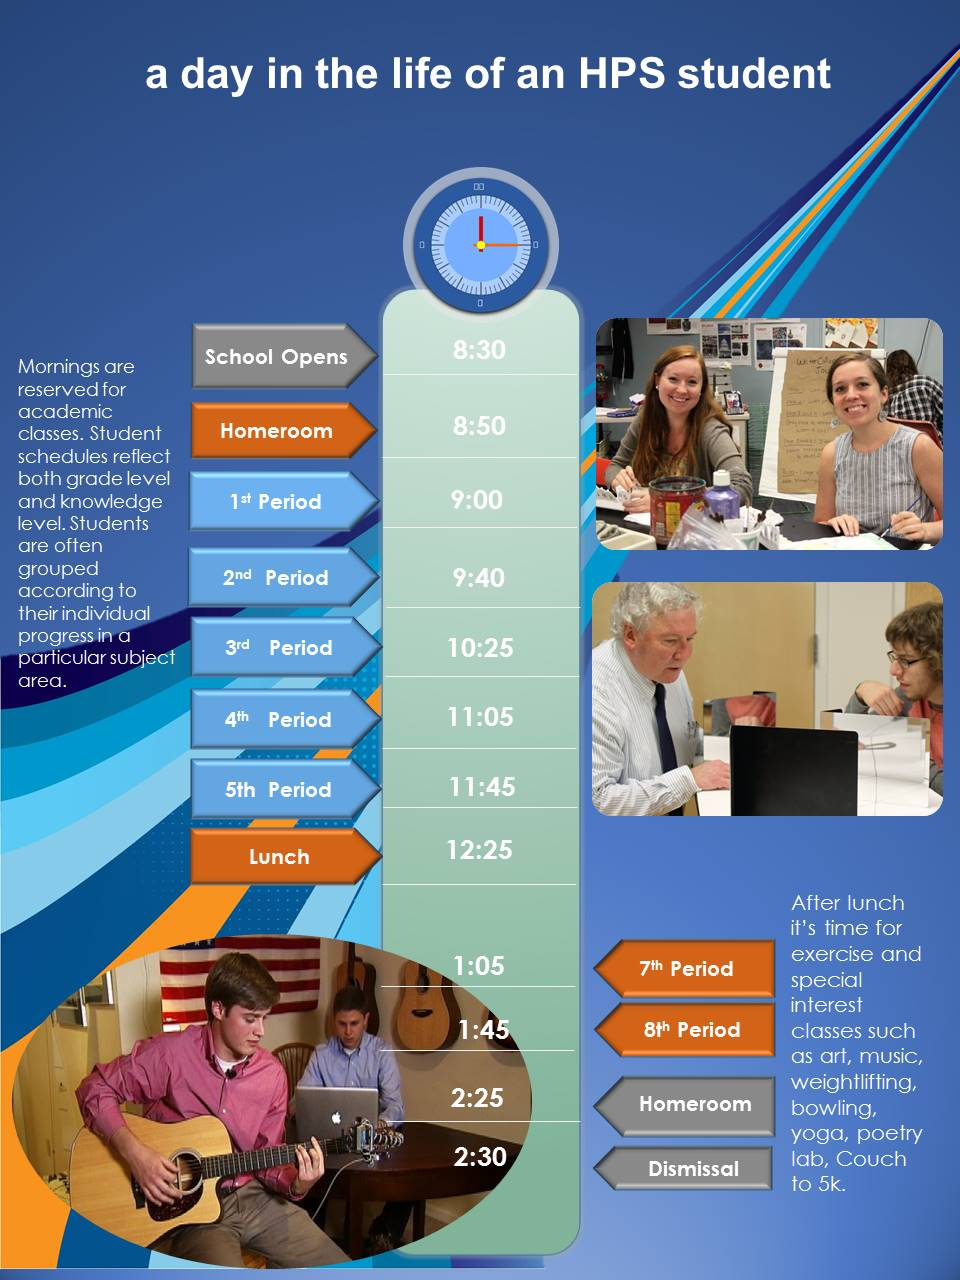 This graphic is a visual depiction of a day in the life of an HPS student. 8:30 School opens,